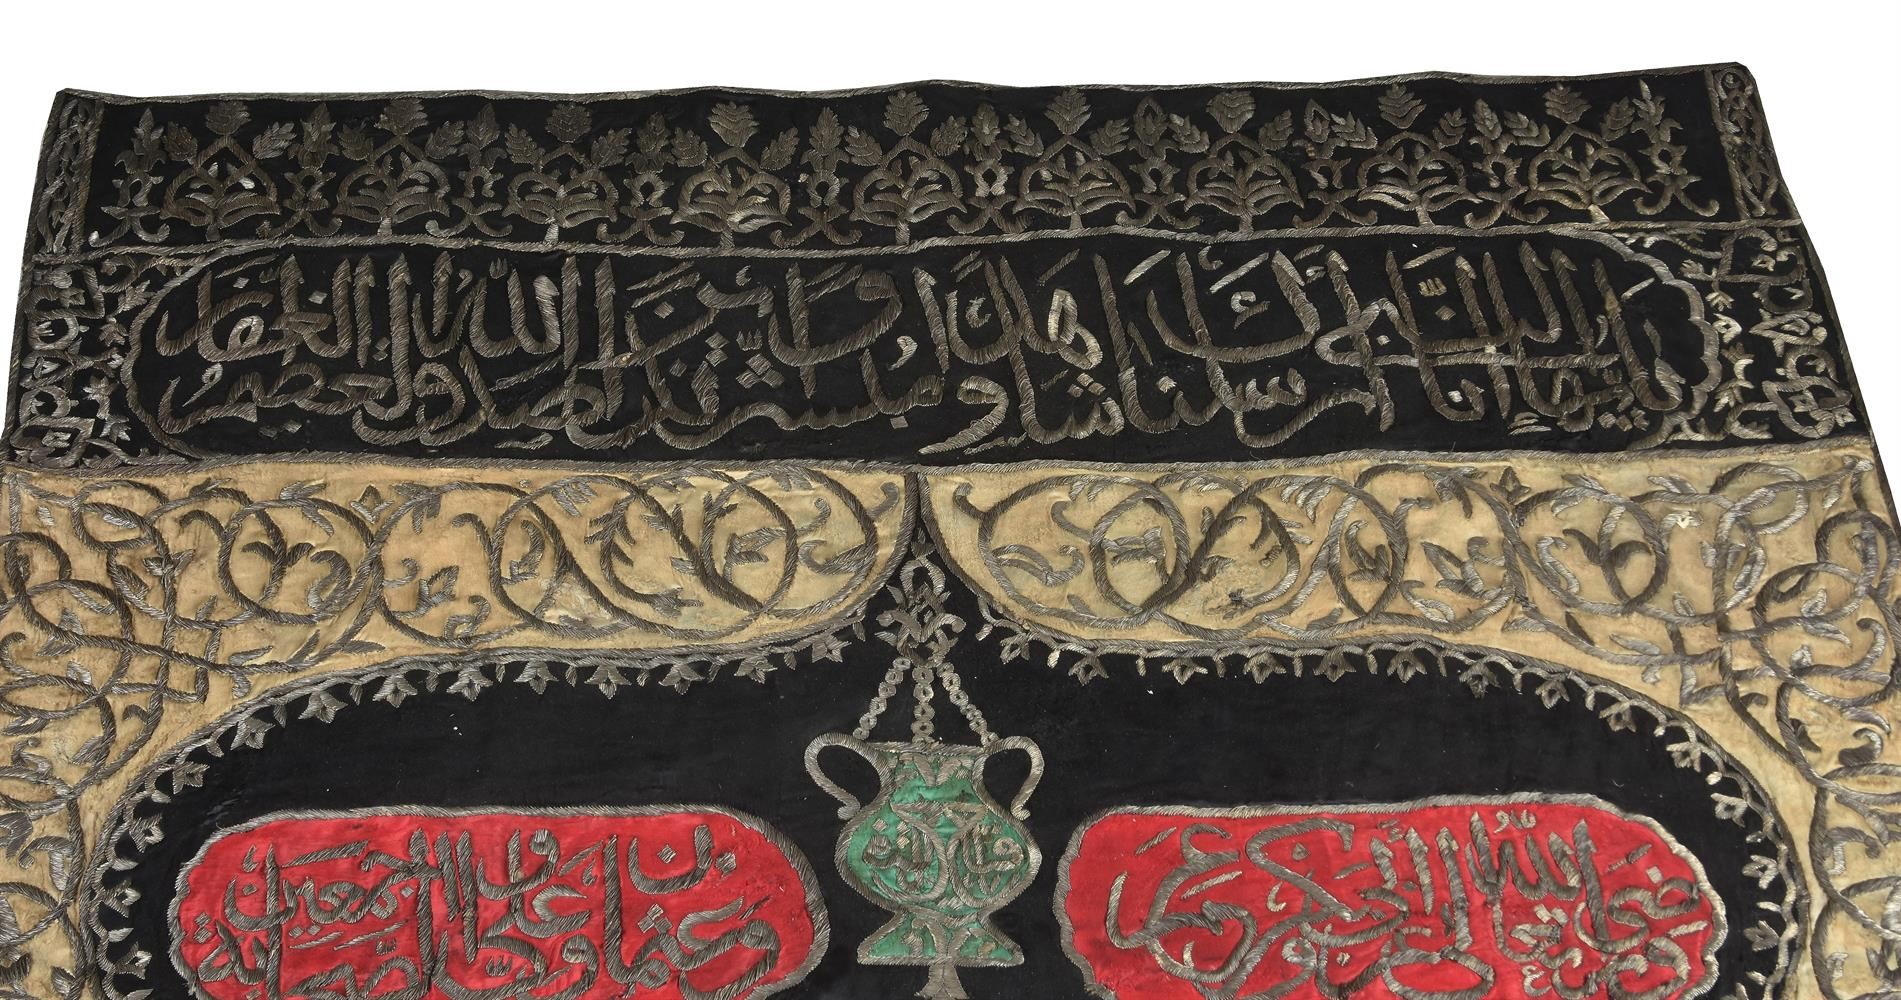 An Ottoman metal thread embroidered silk Tomb Cover with a dedication to Sultan Ahmed III - Image 2 of 6